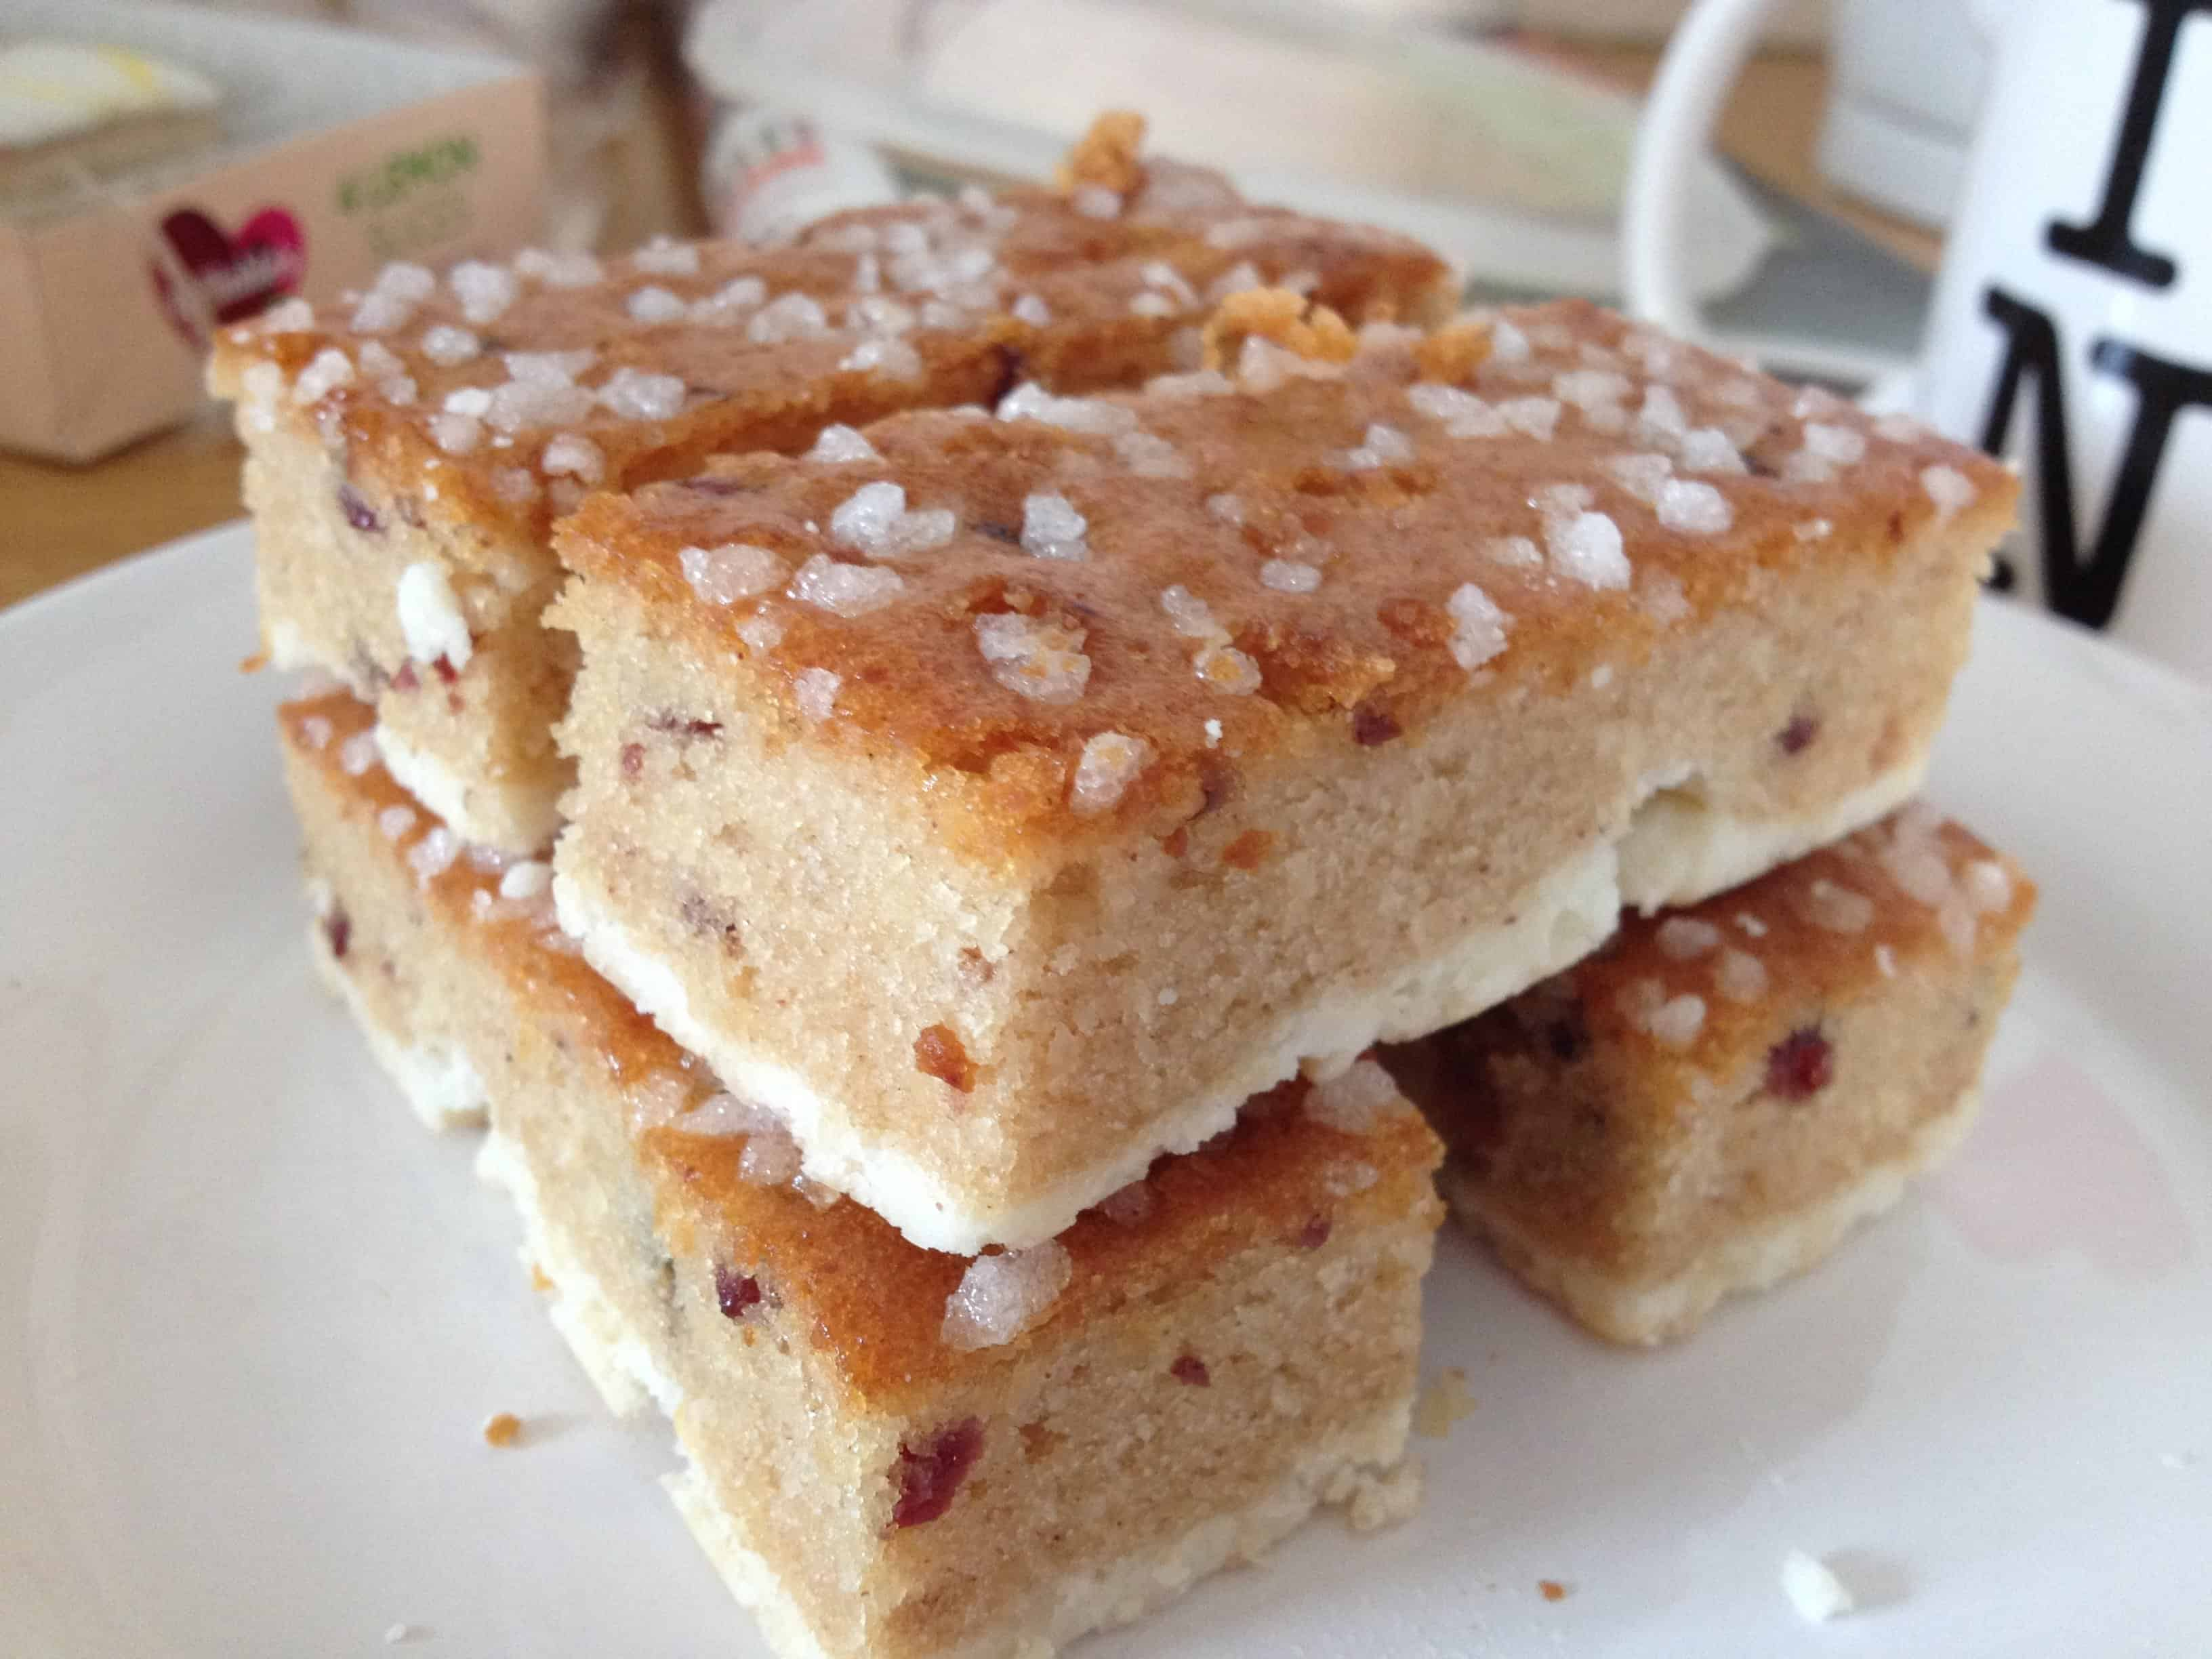 The gluten free country fruit slice from Mrs Crimble's.